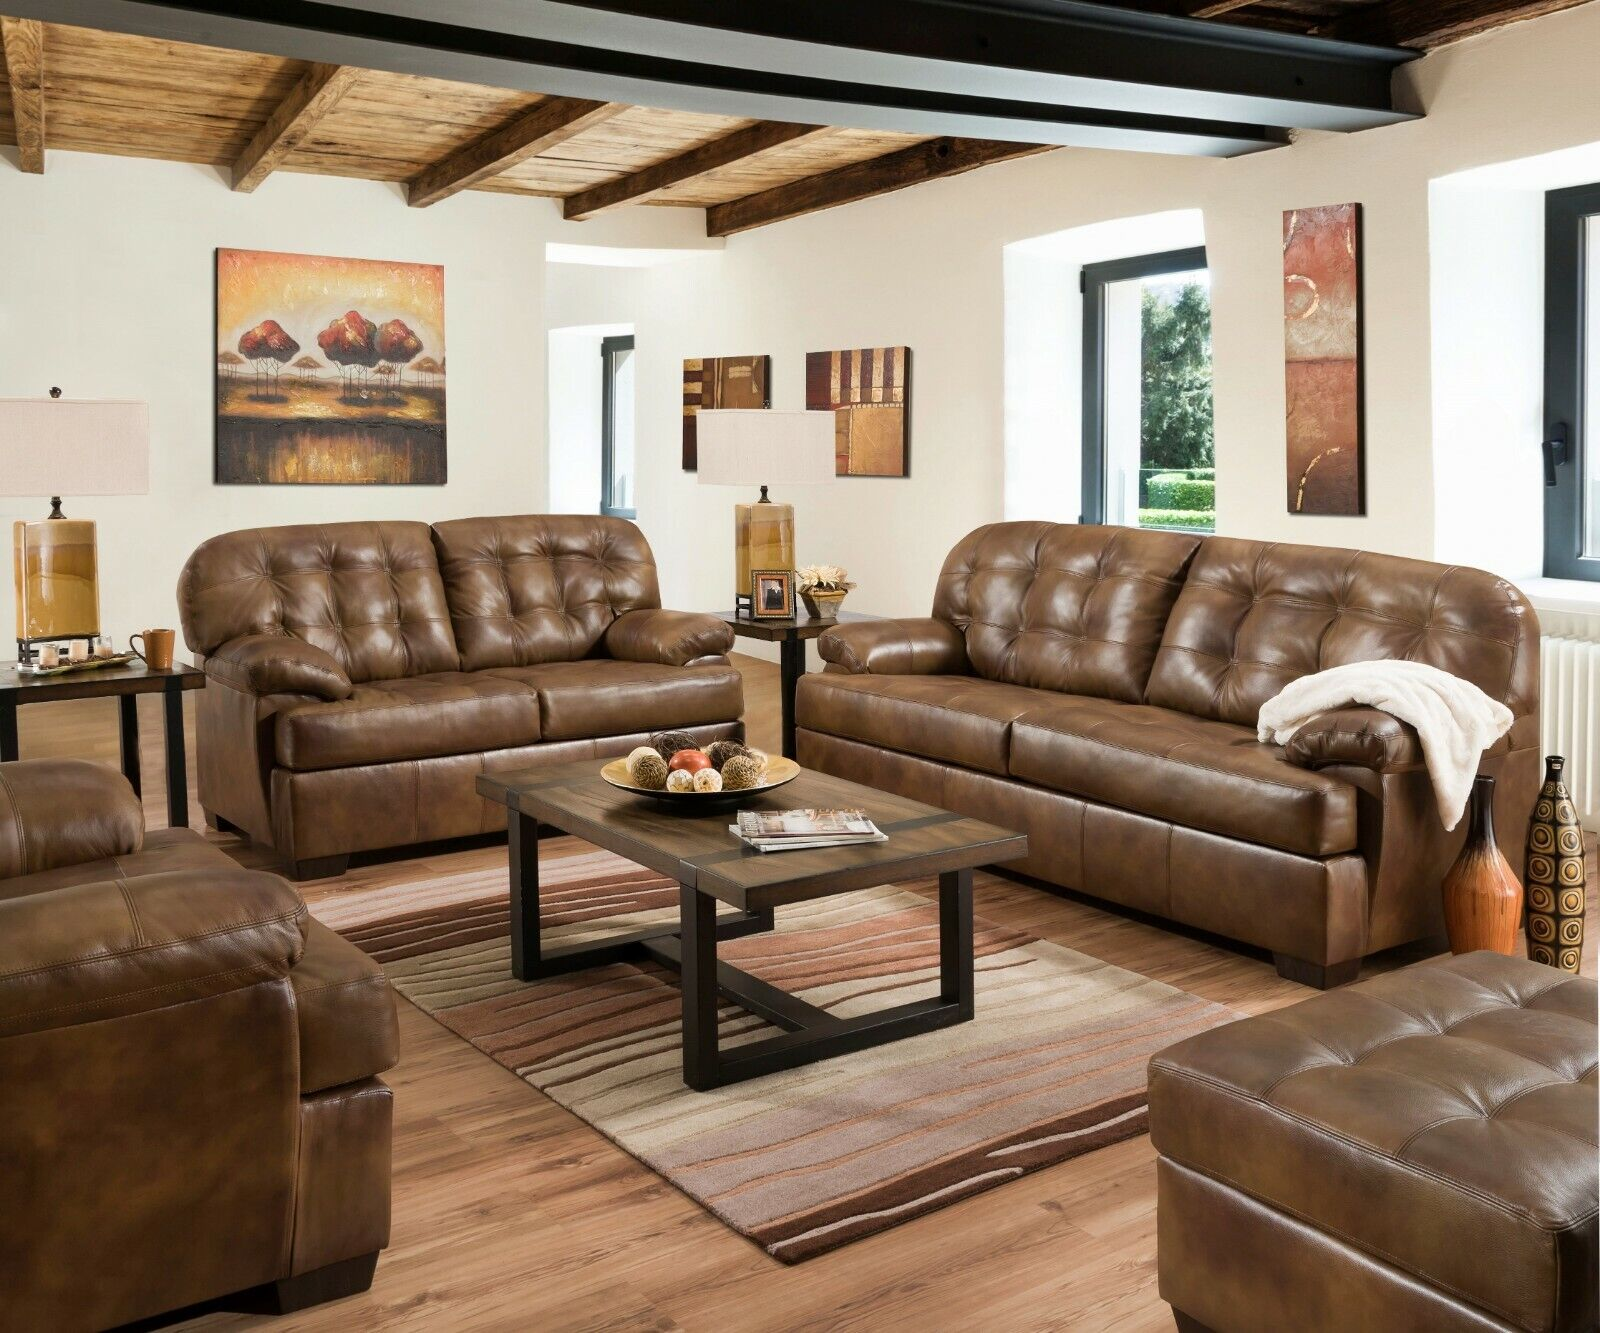 Acme Furniture Saturio Brown Top Grain Leather Sofa and Love